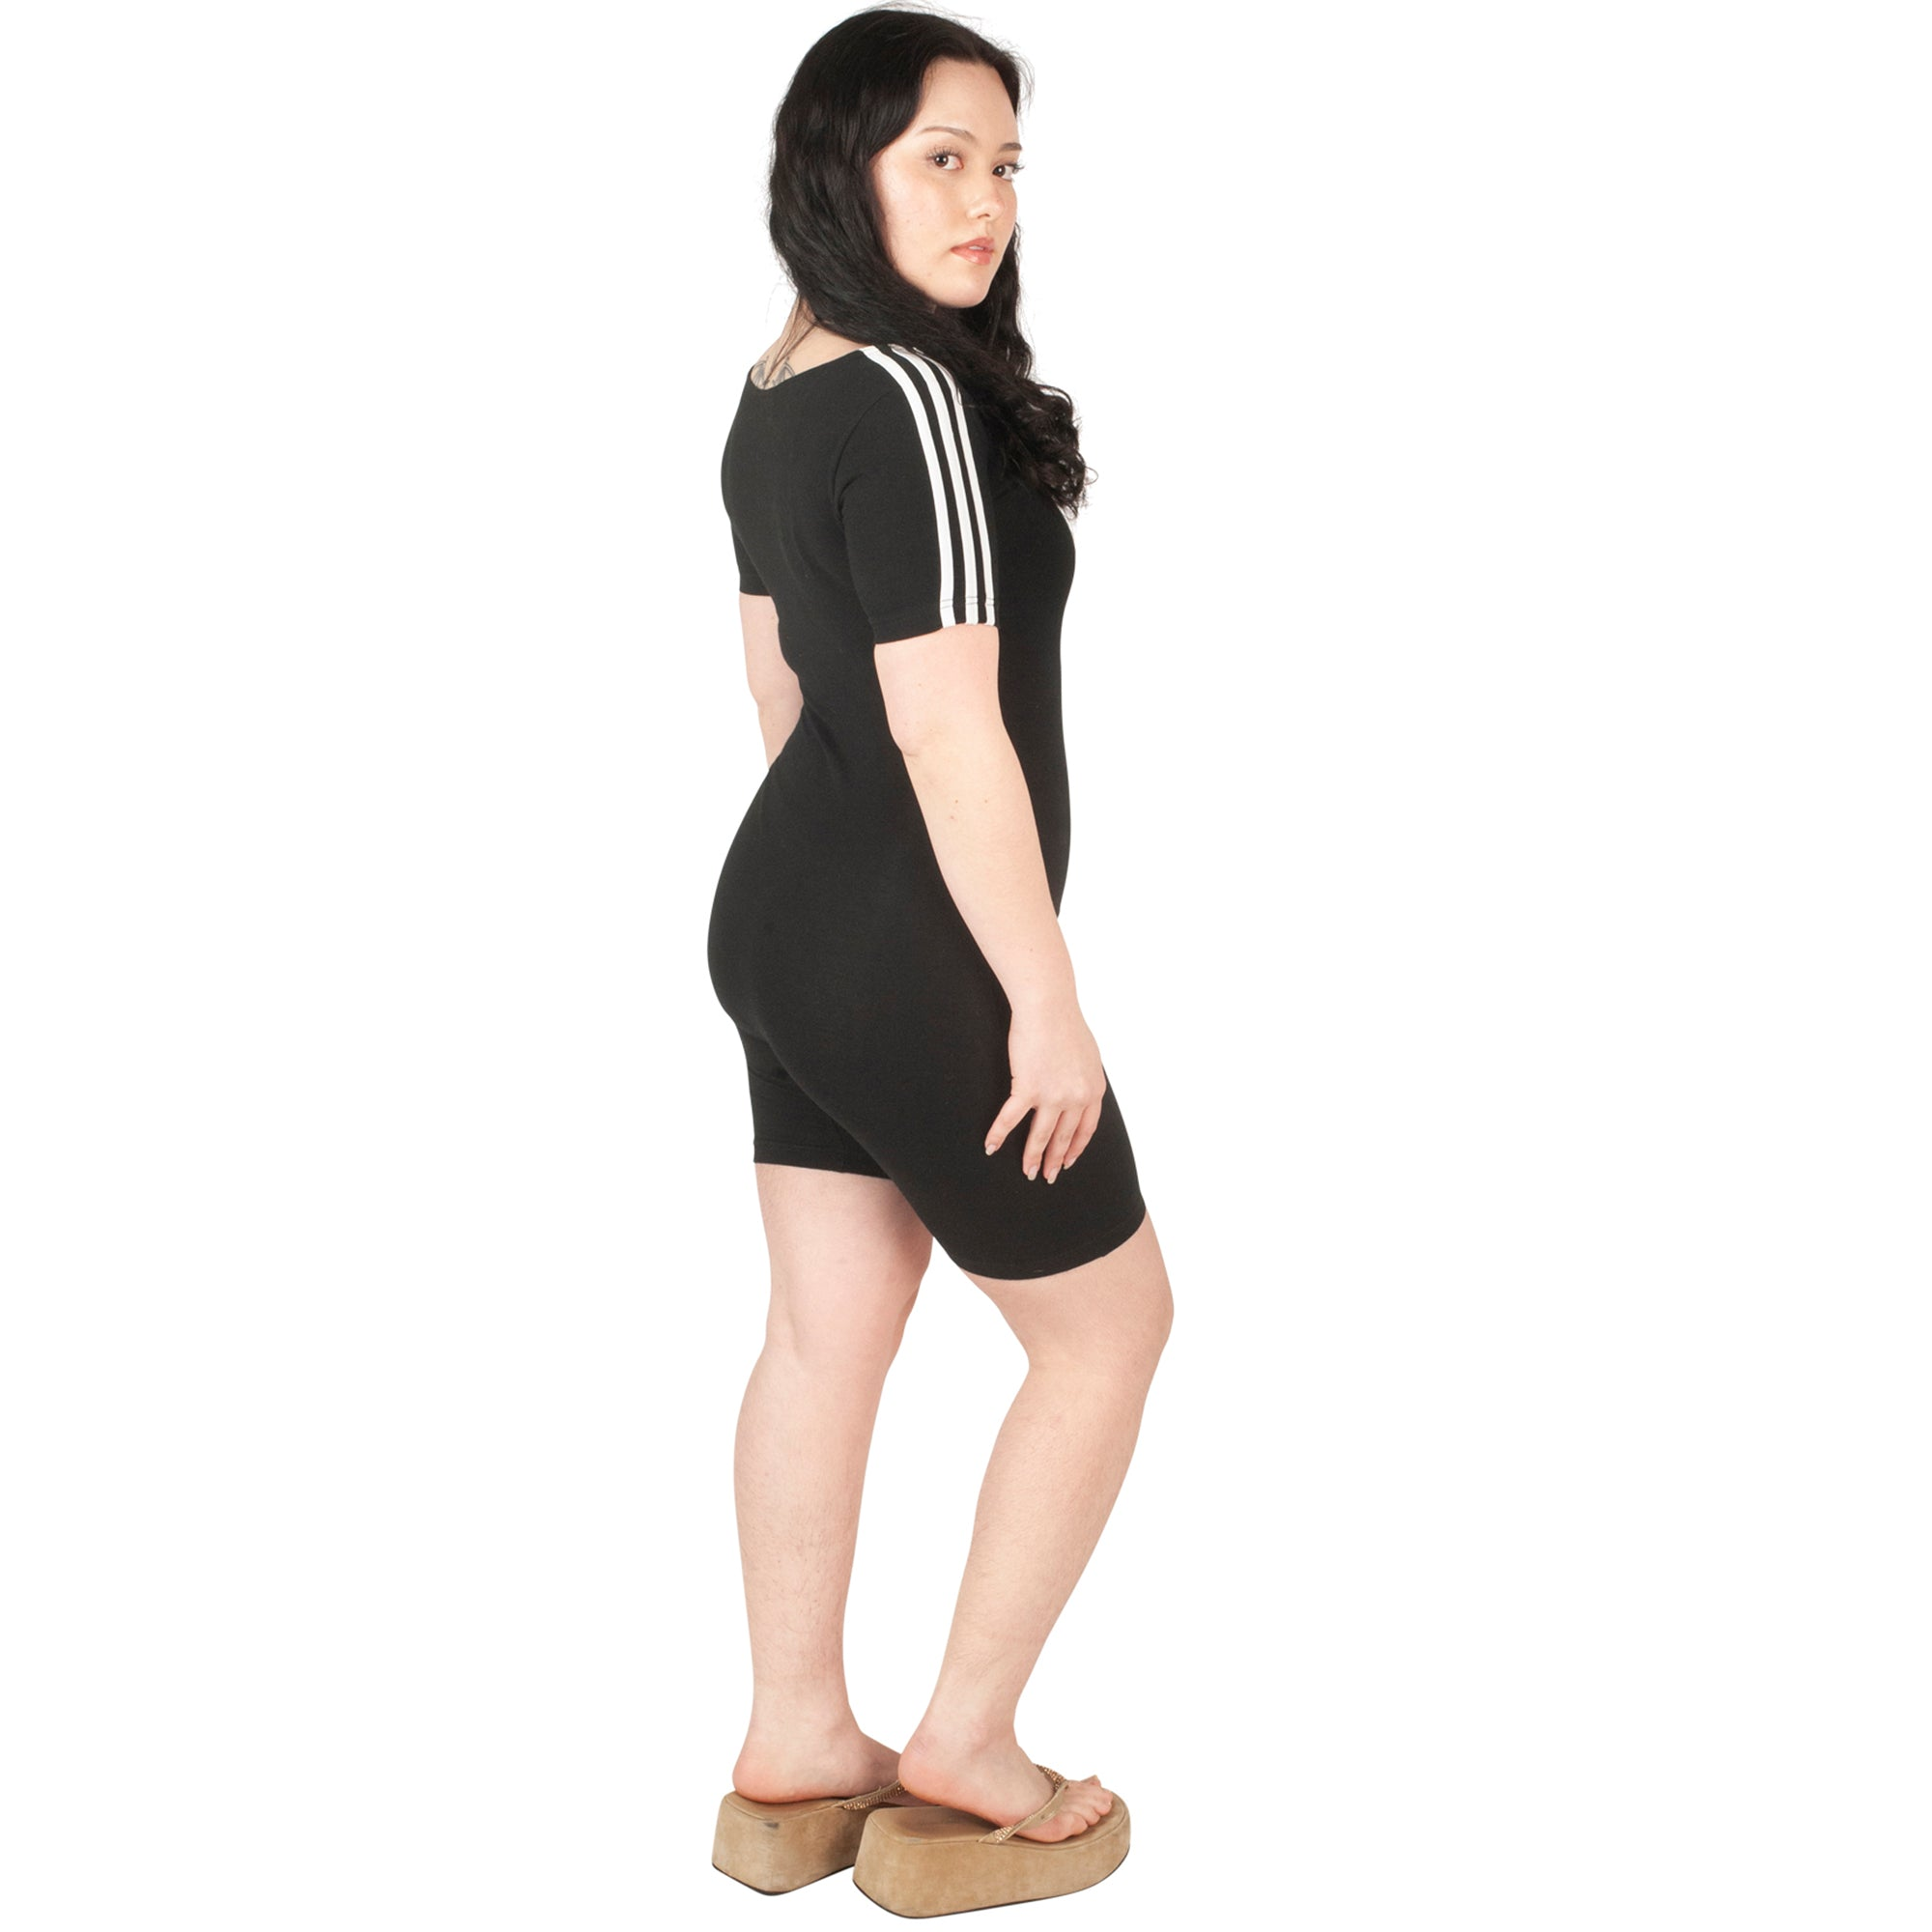 Adidas Playsuit (Black/White) UK 6-8